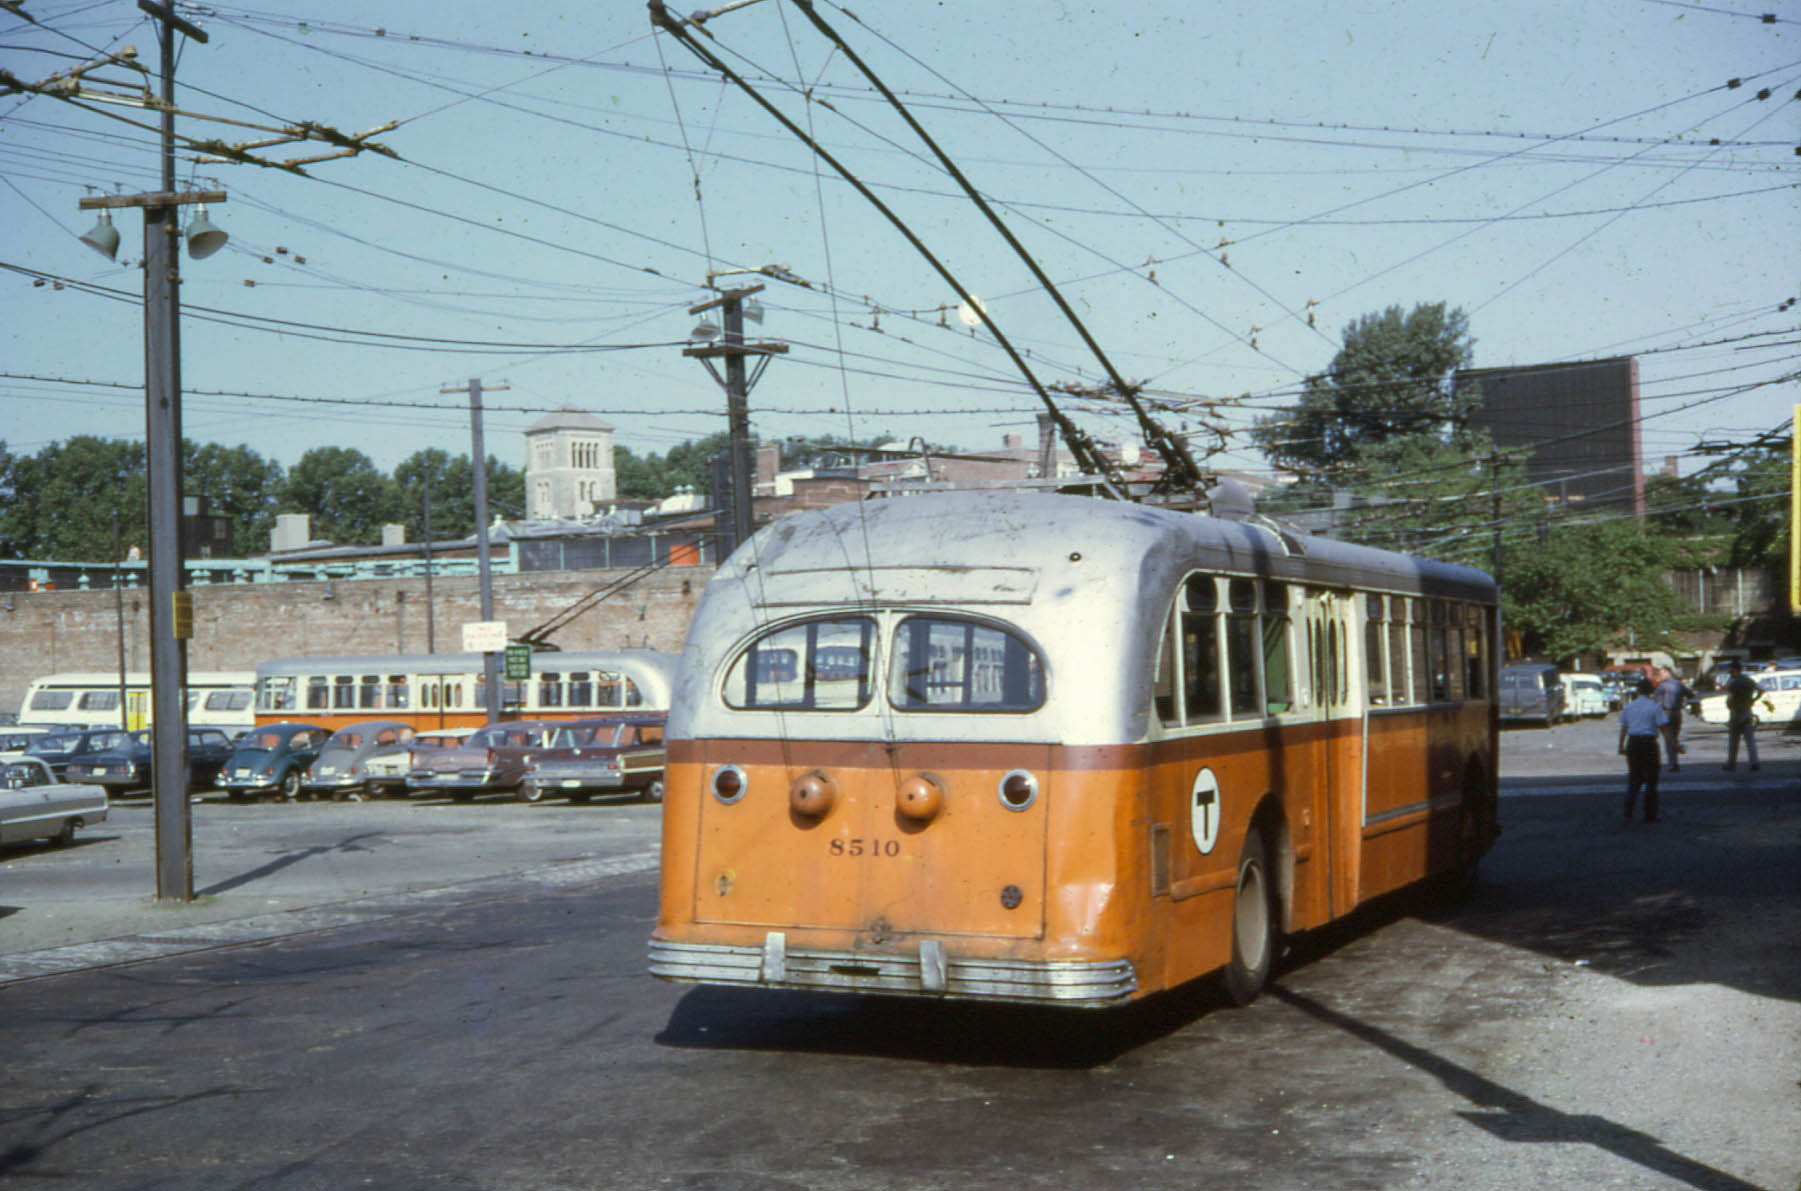 File mbta 8510 at bennett street carhouse in for Car house